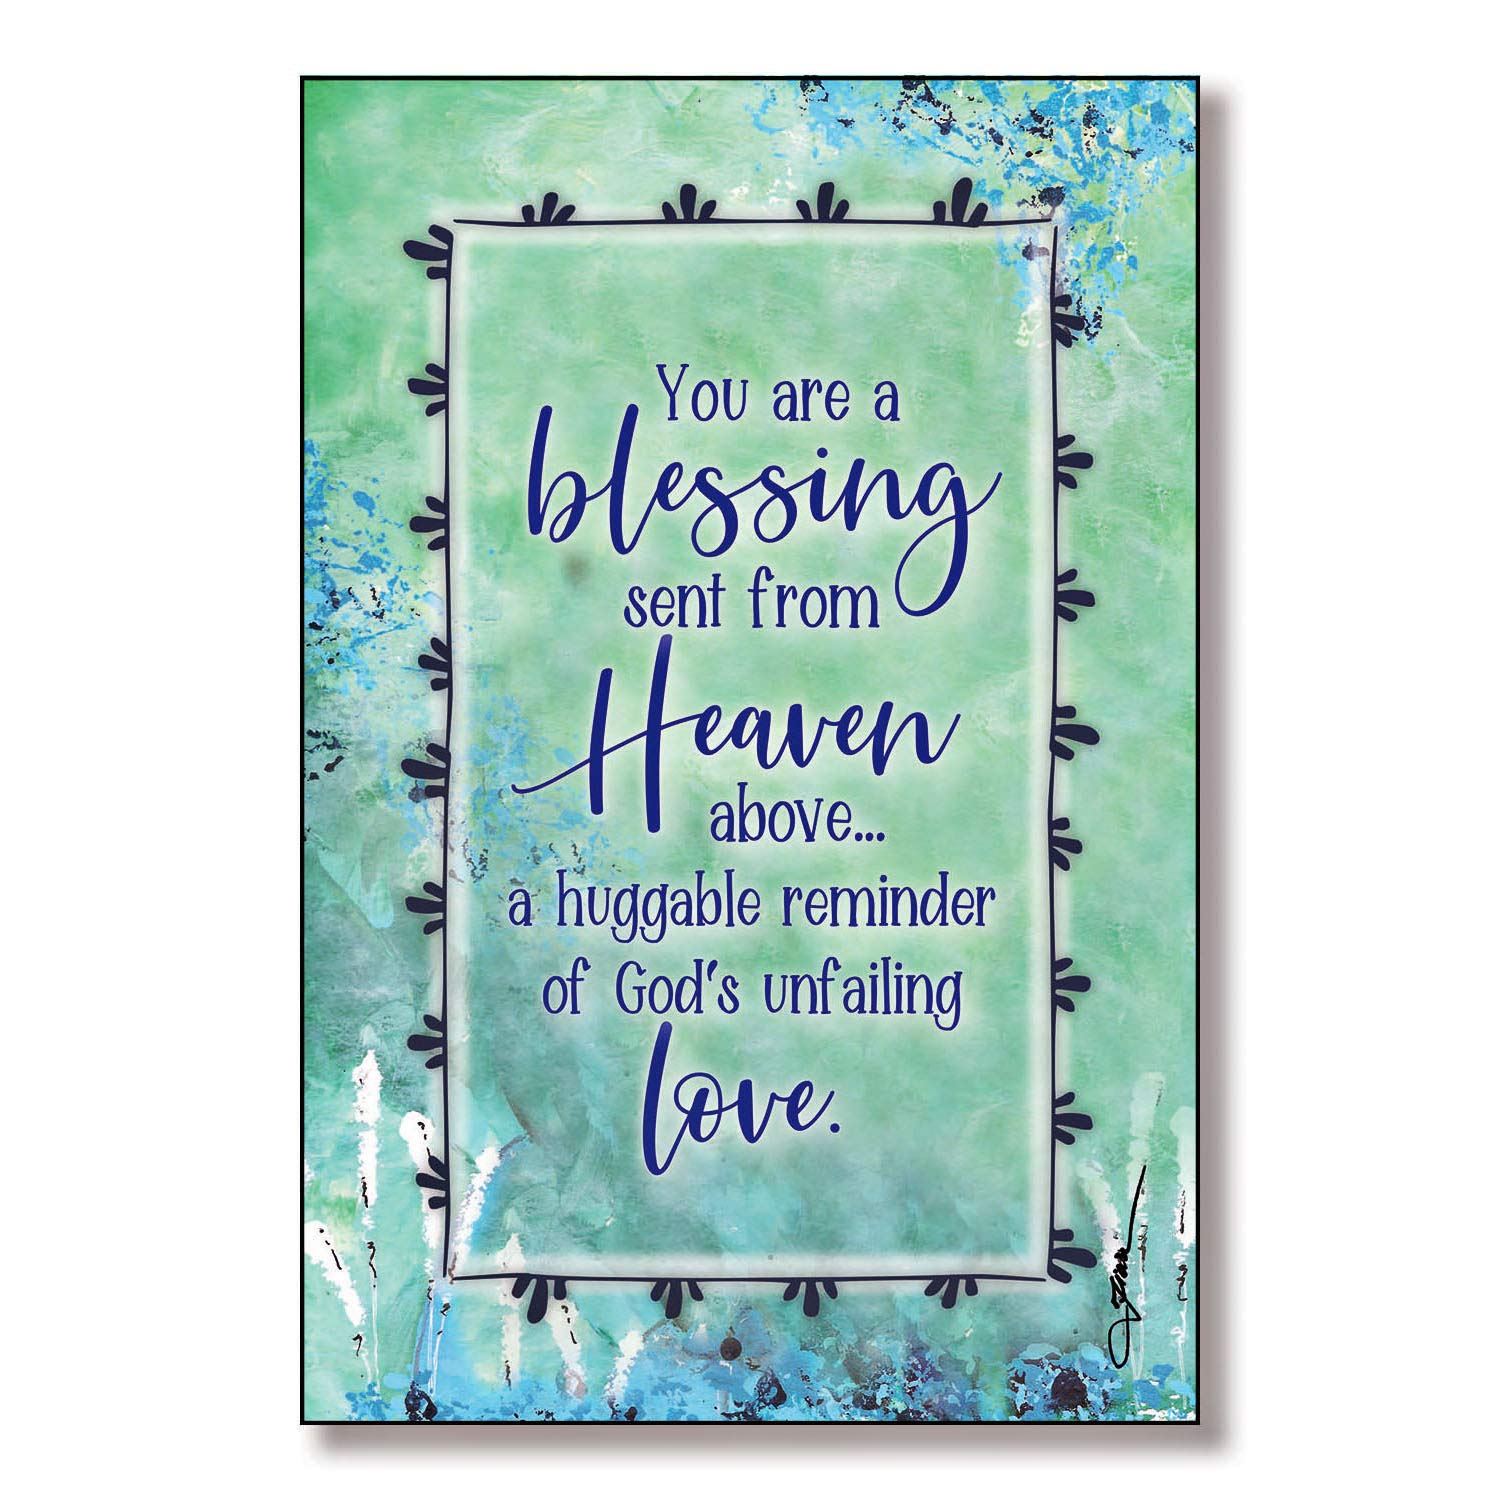 Easel /& Hanging Hook Classic Vertical Frame Wall /& Tabletop Decoration Sent from Heaven Above/…a Reminder of Gods unfailing Love Blessing from Heaven Wood Plaque with Inspiring Quotes 6x9